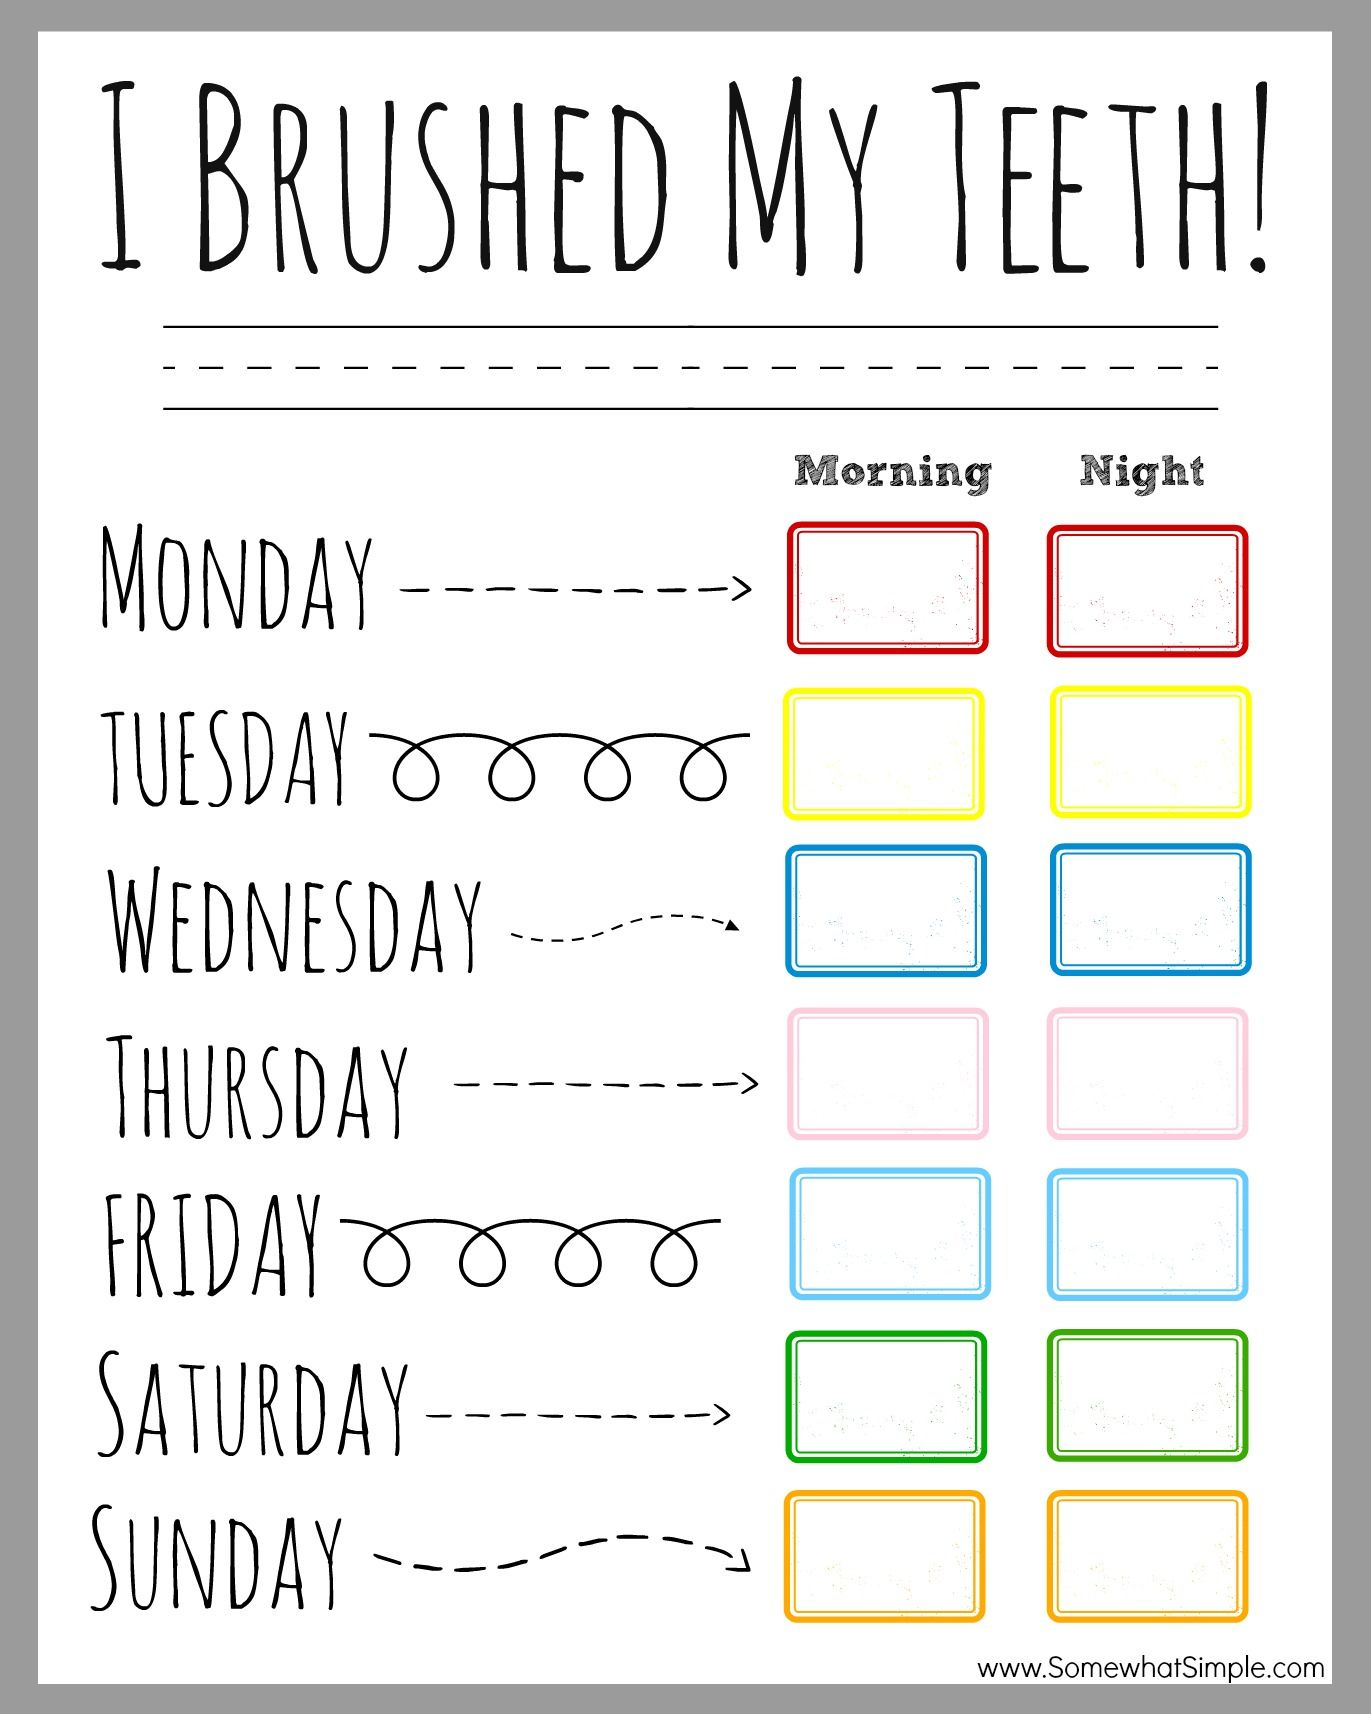 Superb image regarding printable tooth brushing charts